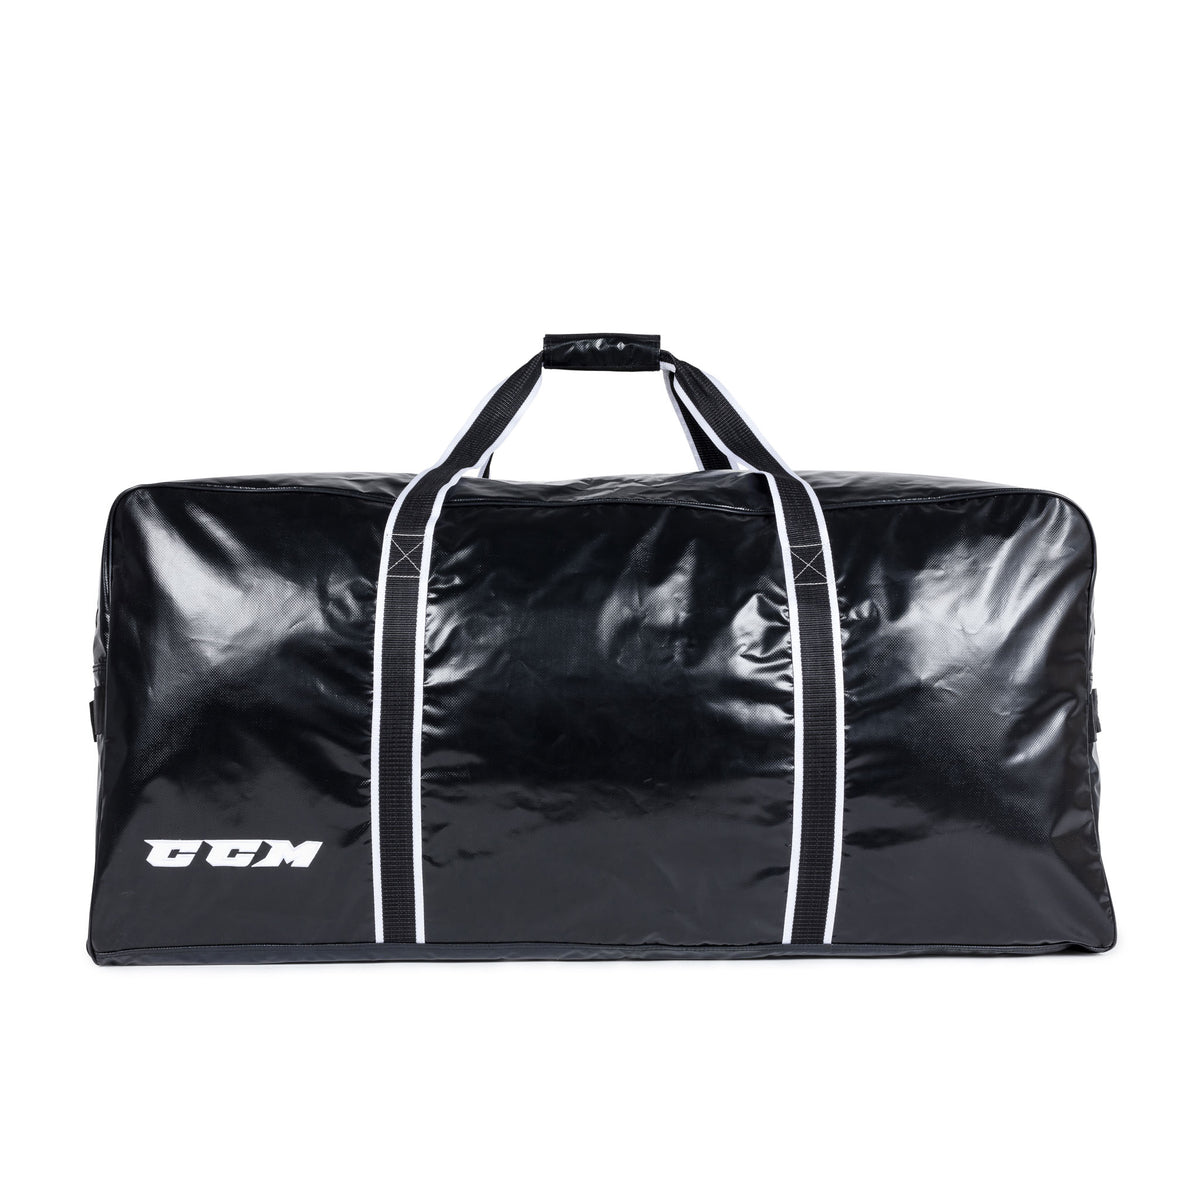 CCM Pro Senior Goalie Carry Bag